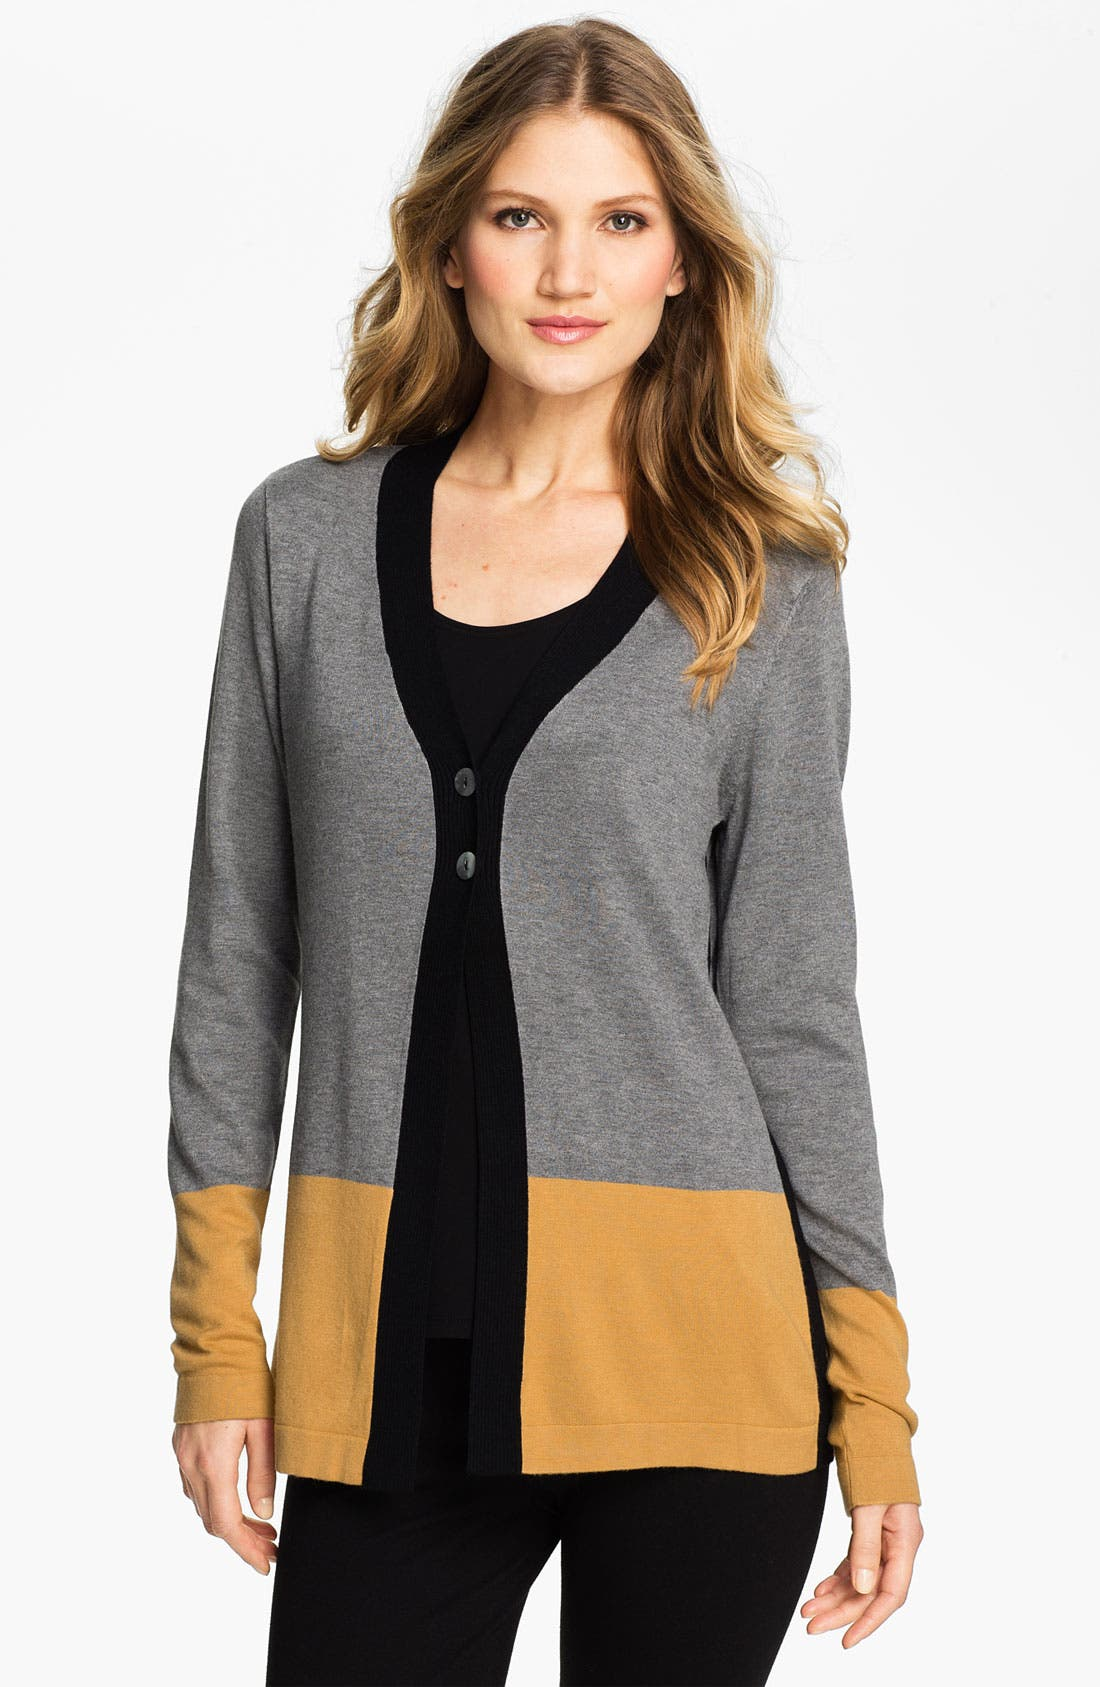 Main Image - Beatrix Ost Colorblock Cardigan (Online Exclusive)